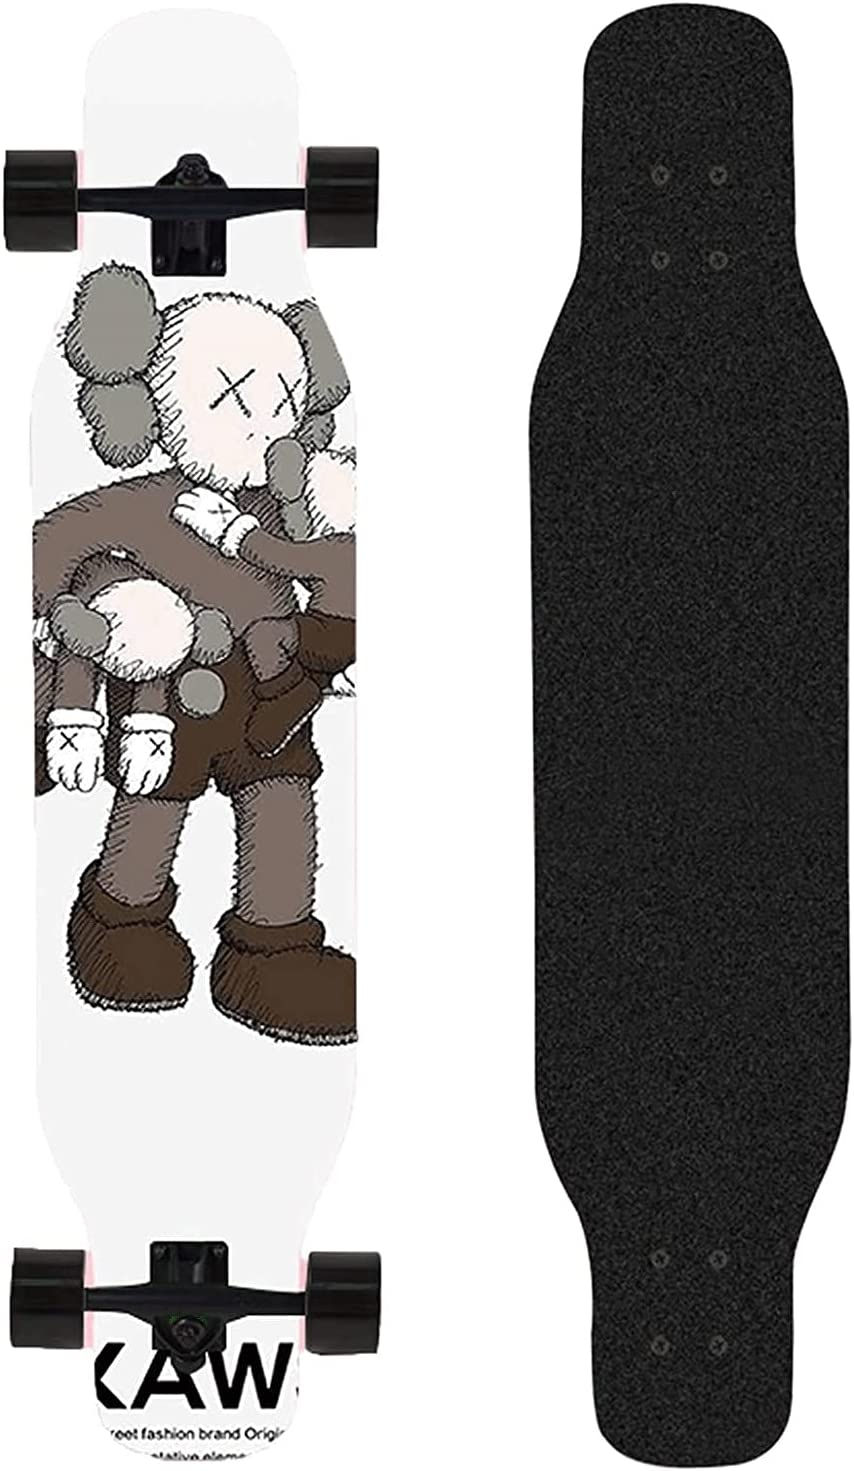 Ranking TOP5 Credence EEGUAI 42 Inch 8 Layer Maple Skate Complete Skateboard Longboard